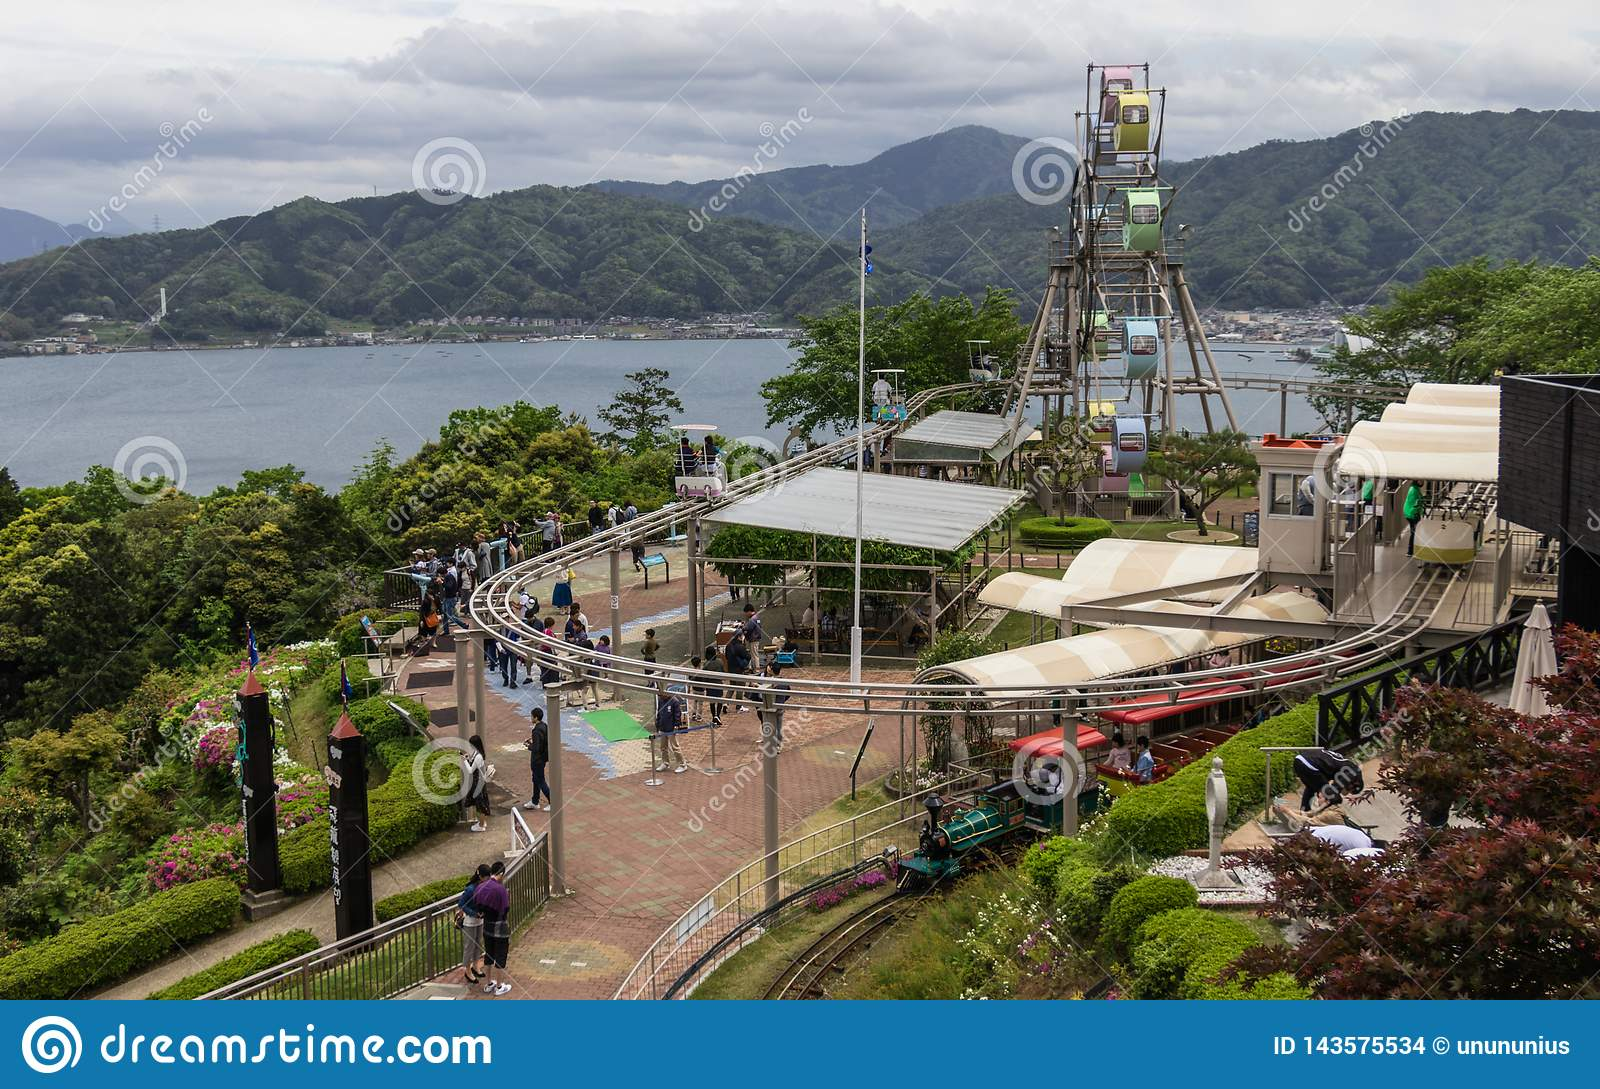 Panorama View on Amanohashidate View Land with Ferris Wheel and activities. Miyazu, Japan, Asia